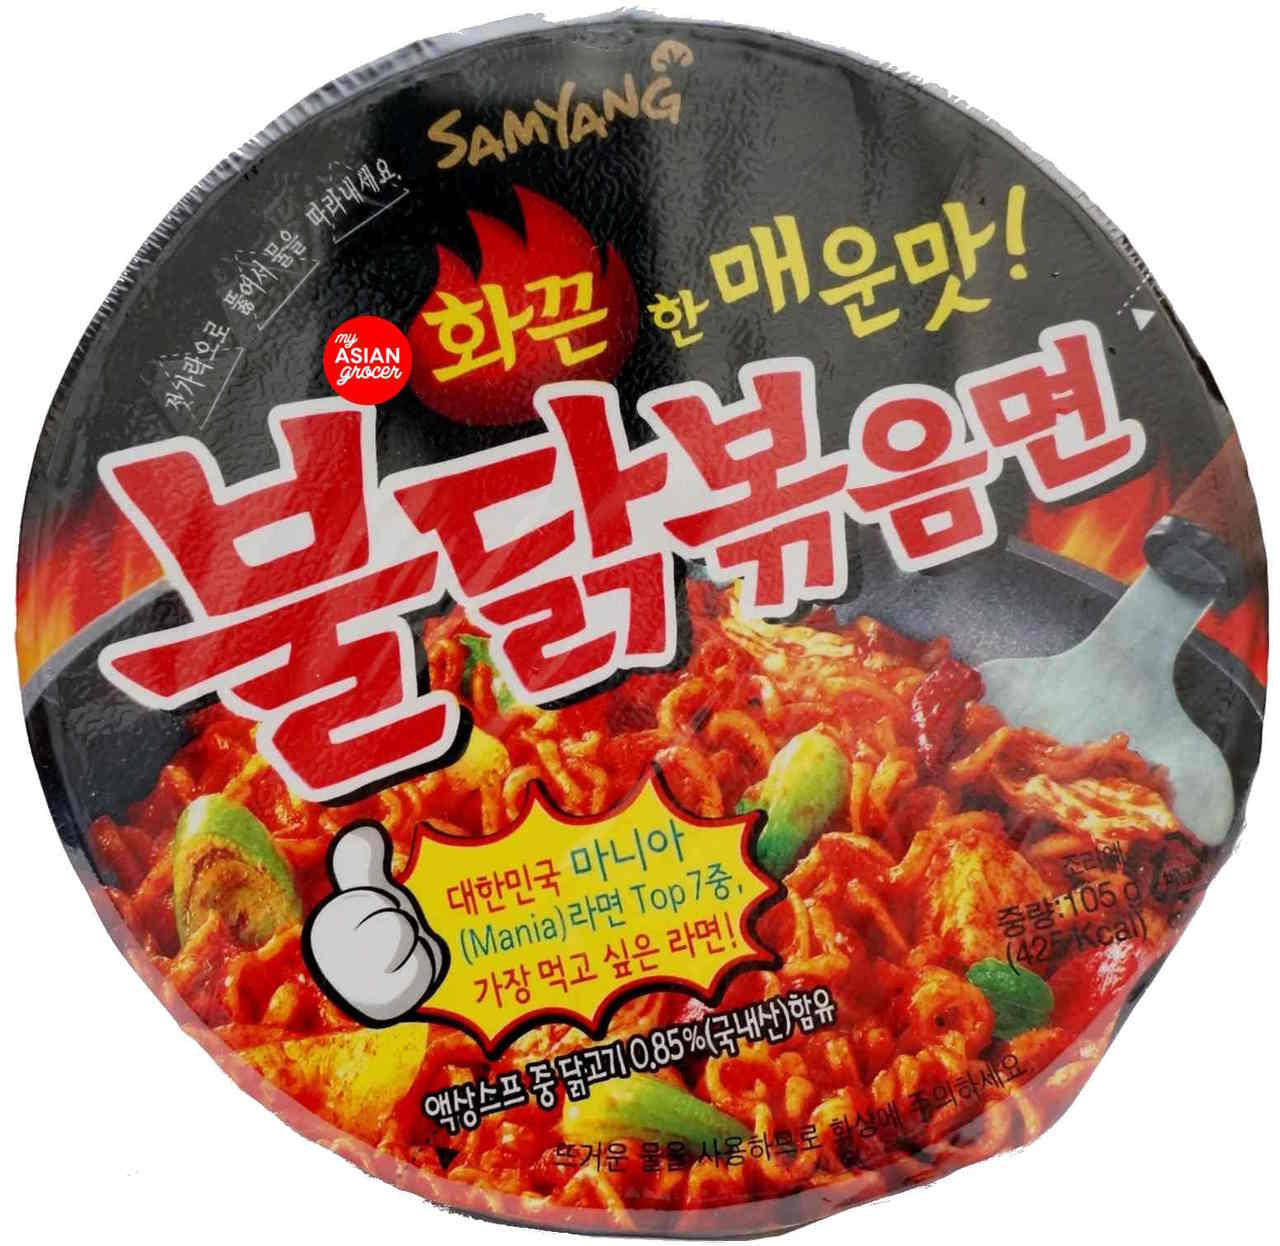 Samyang Spicy Chicken Ramen Cup 105g My Asian Grocer Nuclear 2x